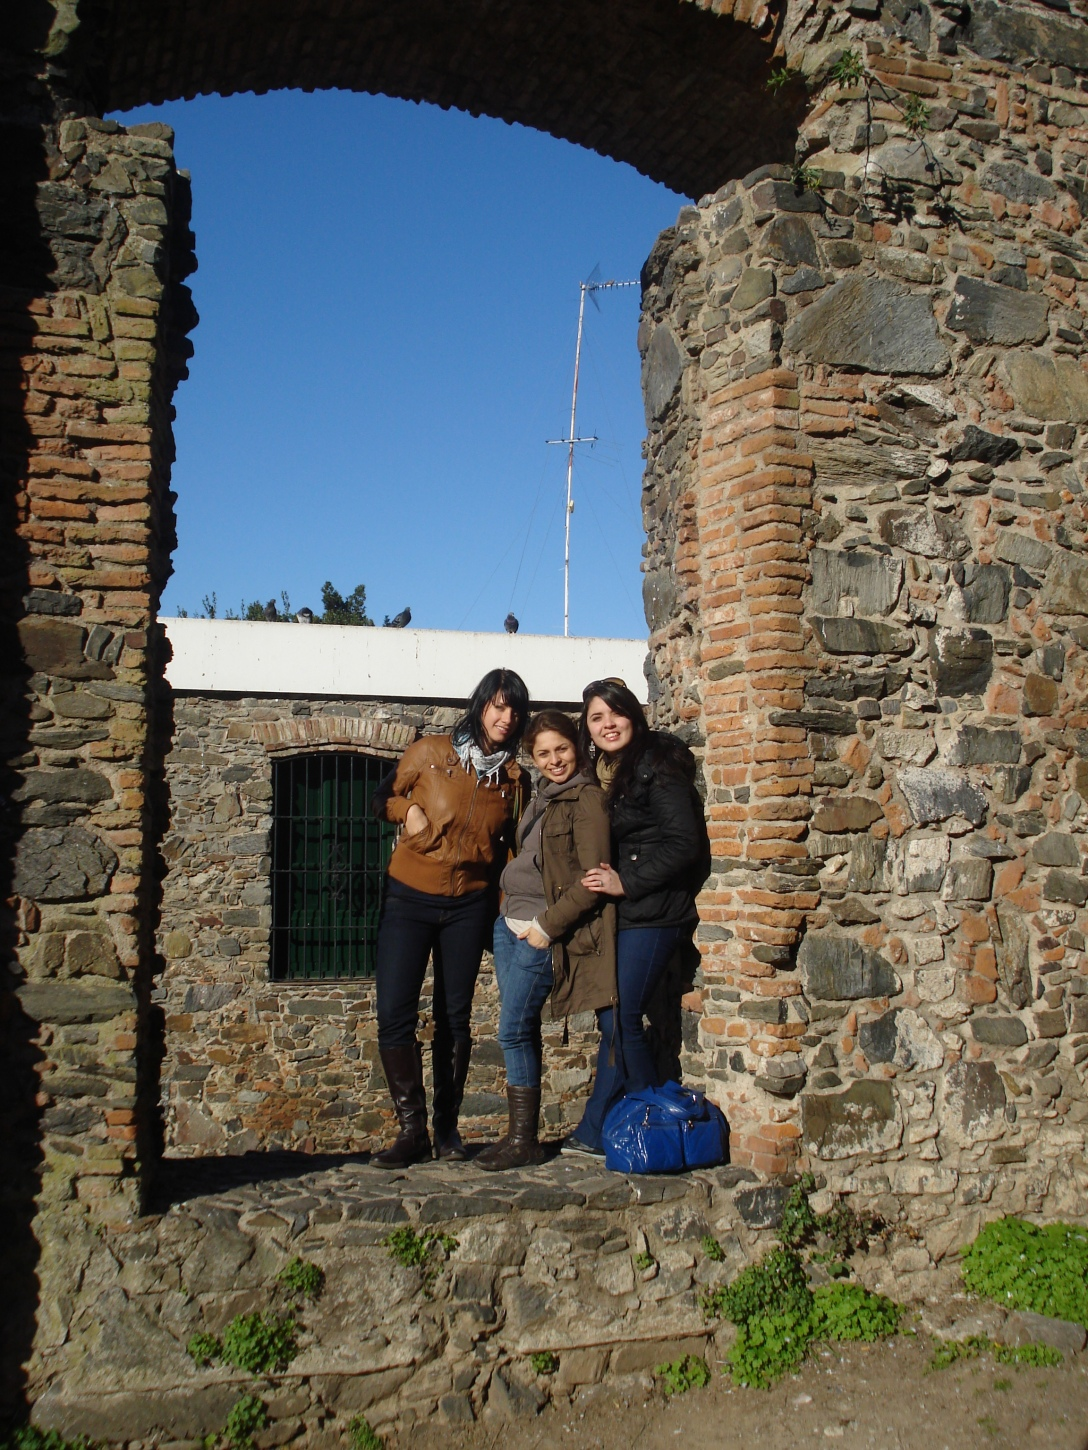 Me, Alejandra, and Bia...beautiful sunny day, but cold!